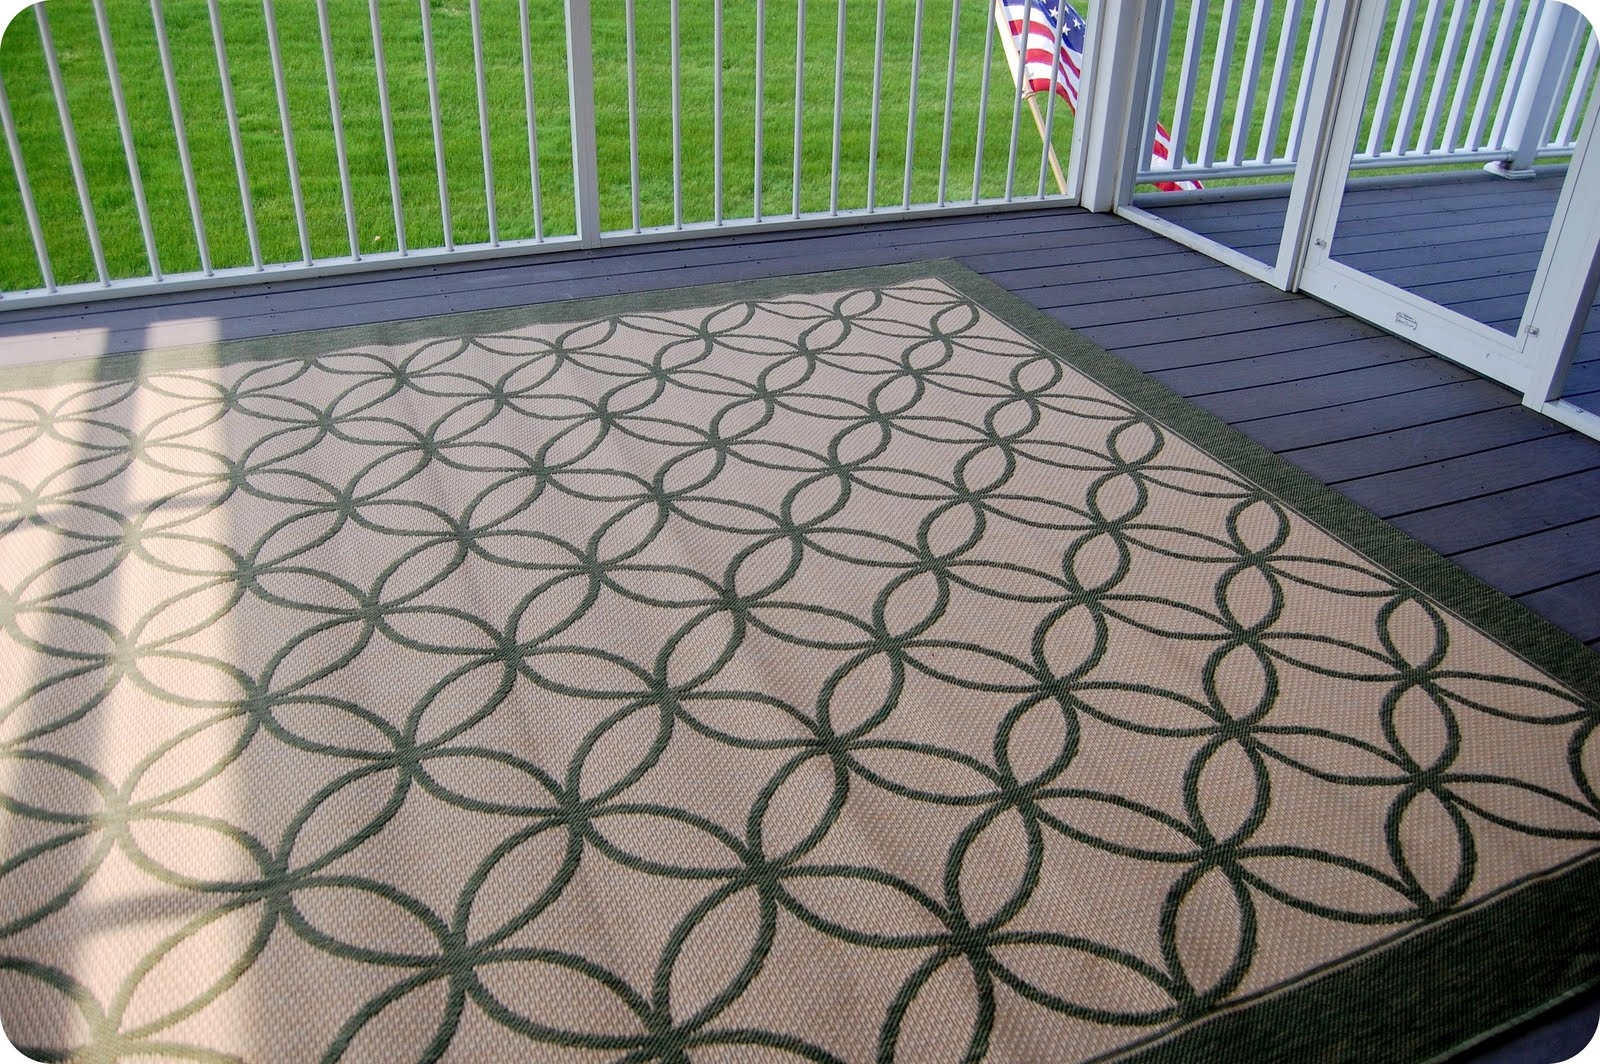 Outdoor Rugs For Patios Design Home Design Fuller Intended For Outside Rugs For Decks (Image 9 of 15)